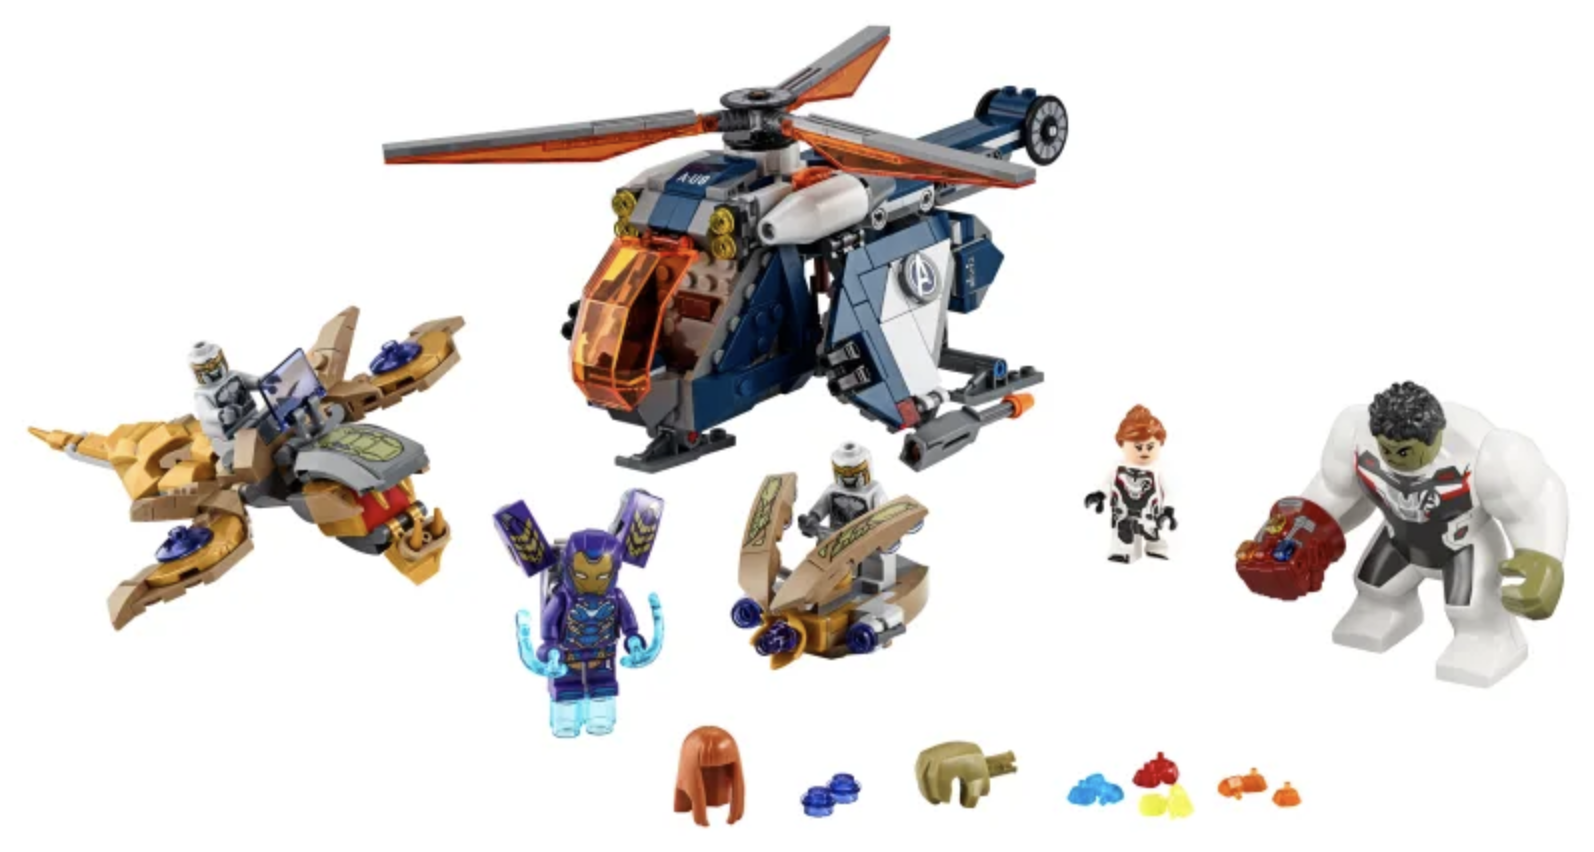 LEGO Infinity Stones: Where Can You Find Them?